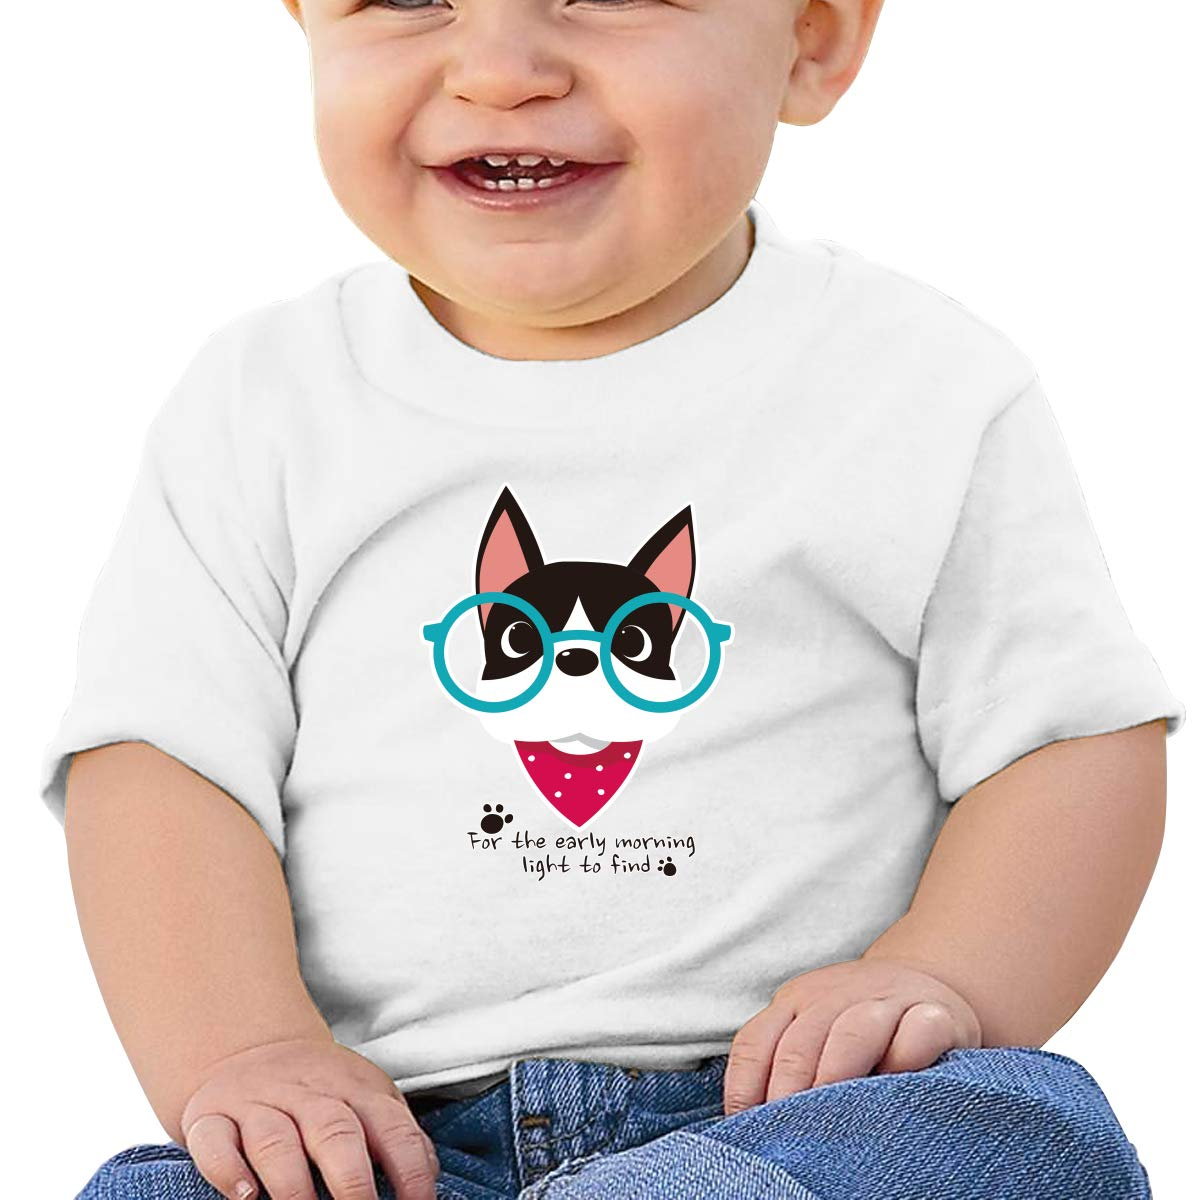 BuecoutesGlasses Dog Toddler//Infant Short Sleeve Cotton T Shirts White